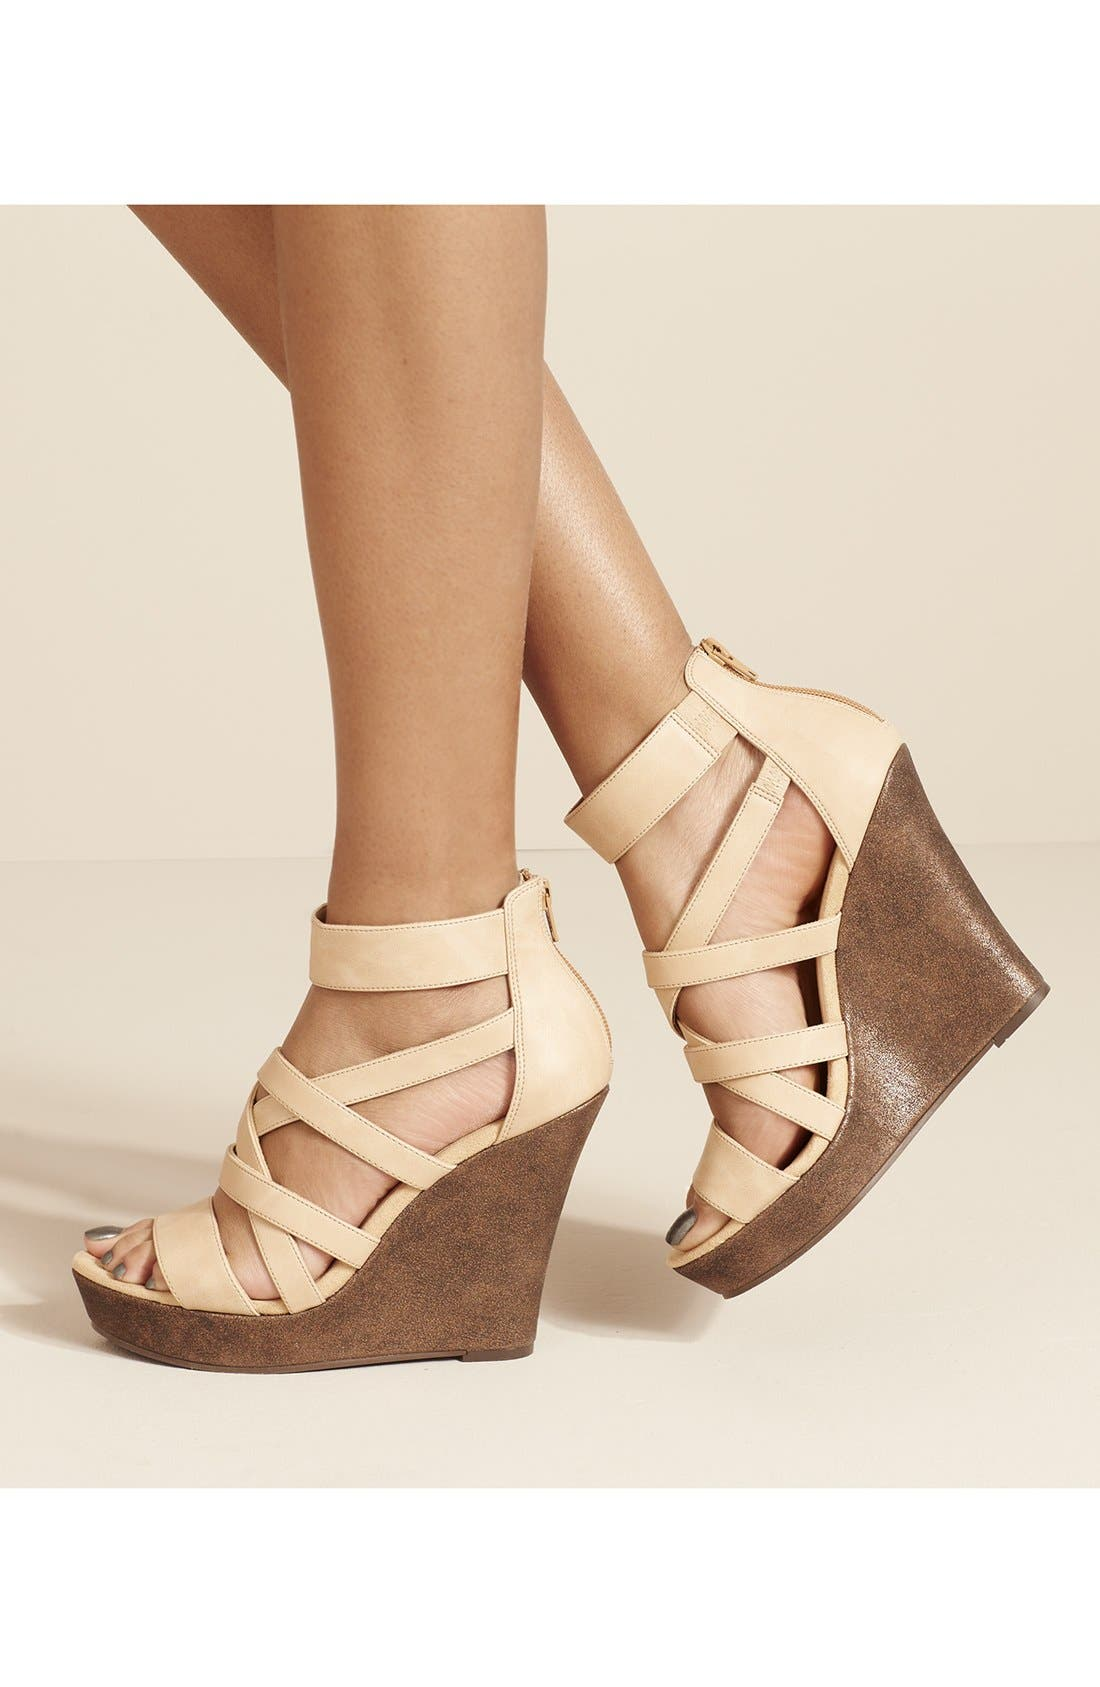 'Tell You What' Wedge Sandal,                         Main,                         color, 341